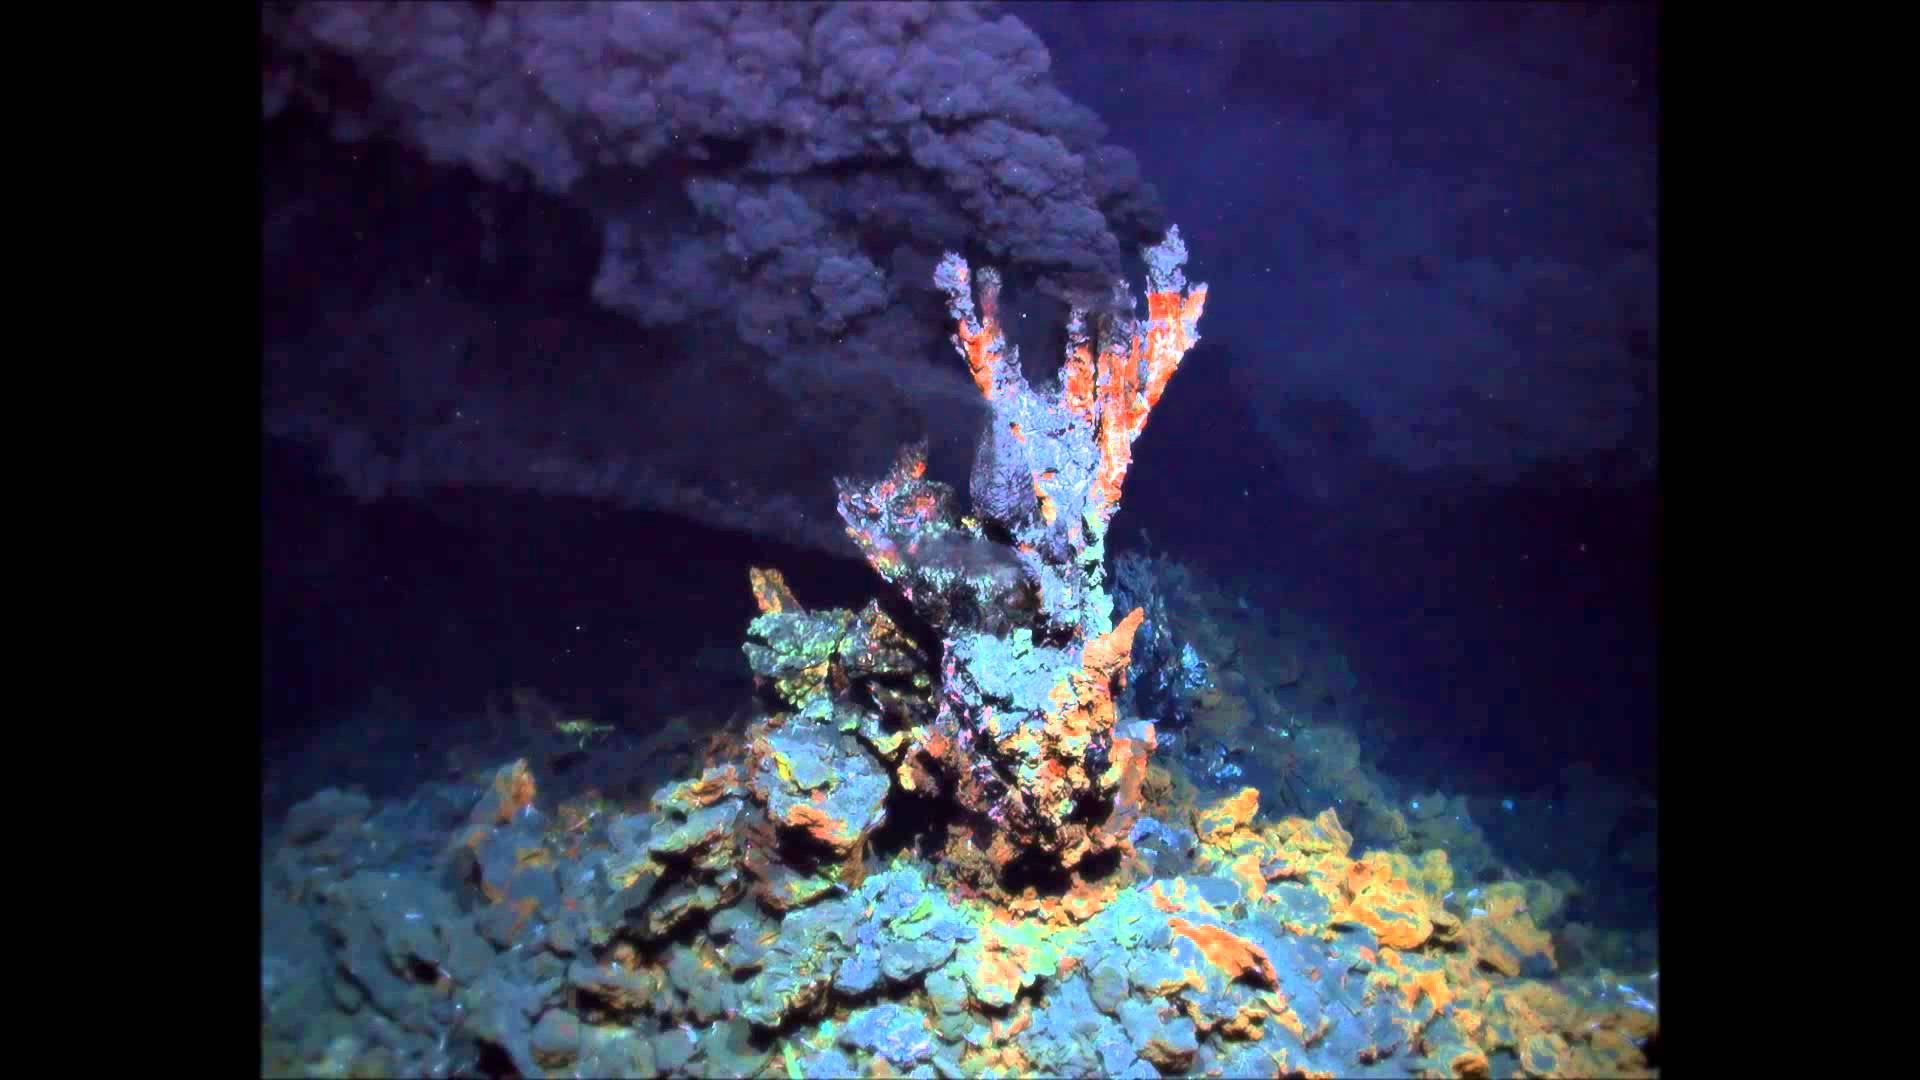 a discovery of hydrothermal vent Hydrothermal vents are the result of sea water percolating down through fissures in the ocean crust in the vicinity of spreading centers or subduction zones.